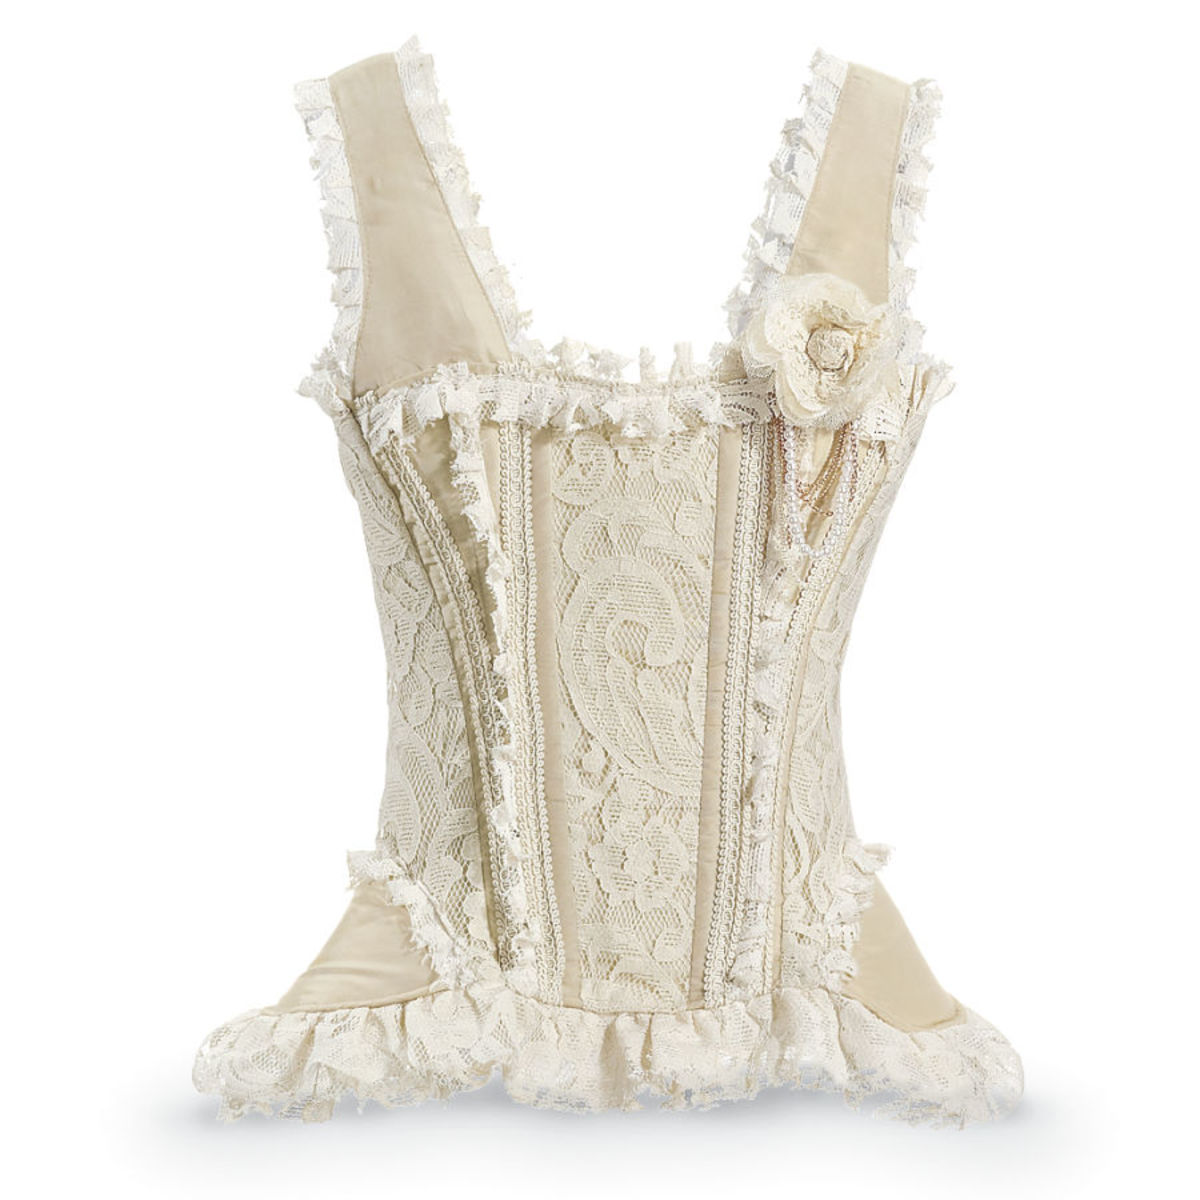 Venetian Lace and Taffeta Corset $140